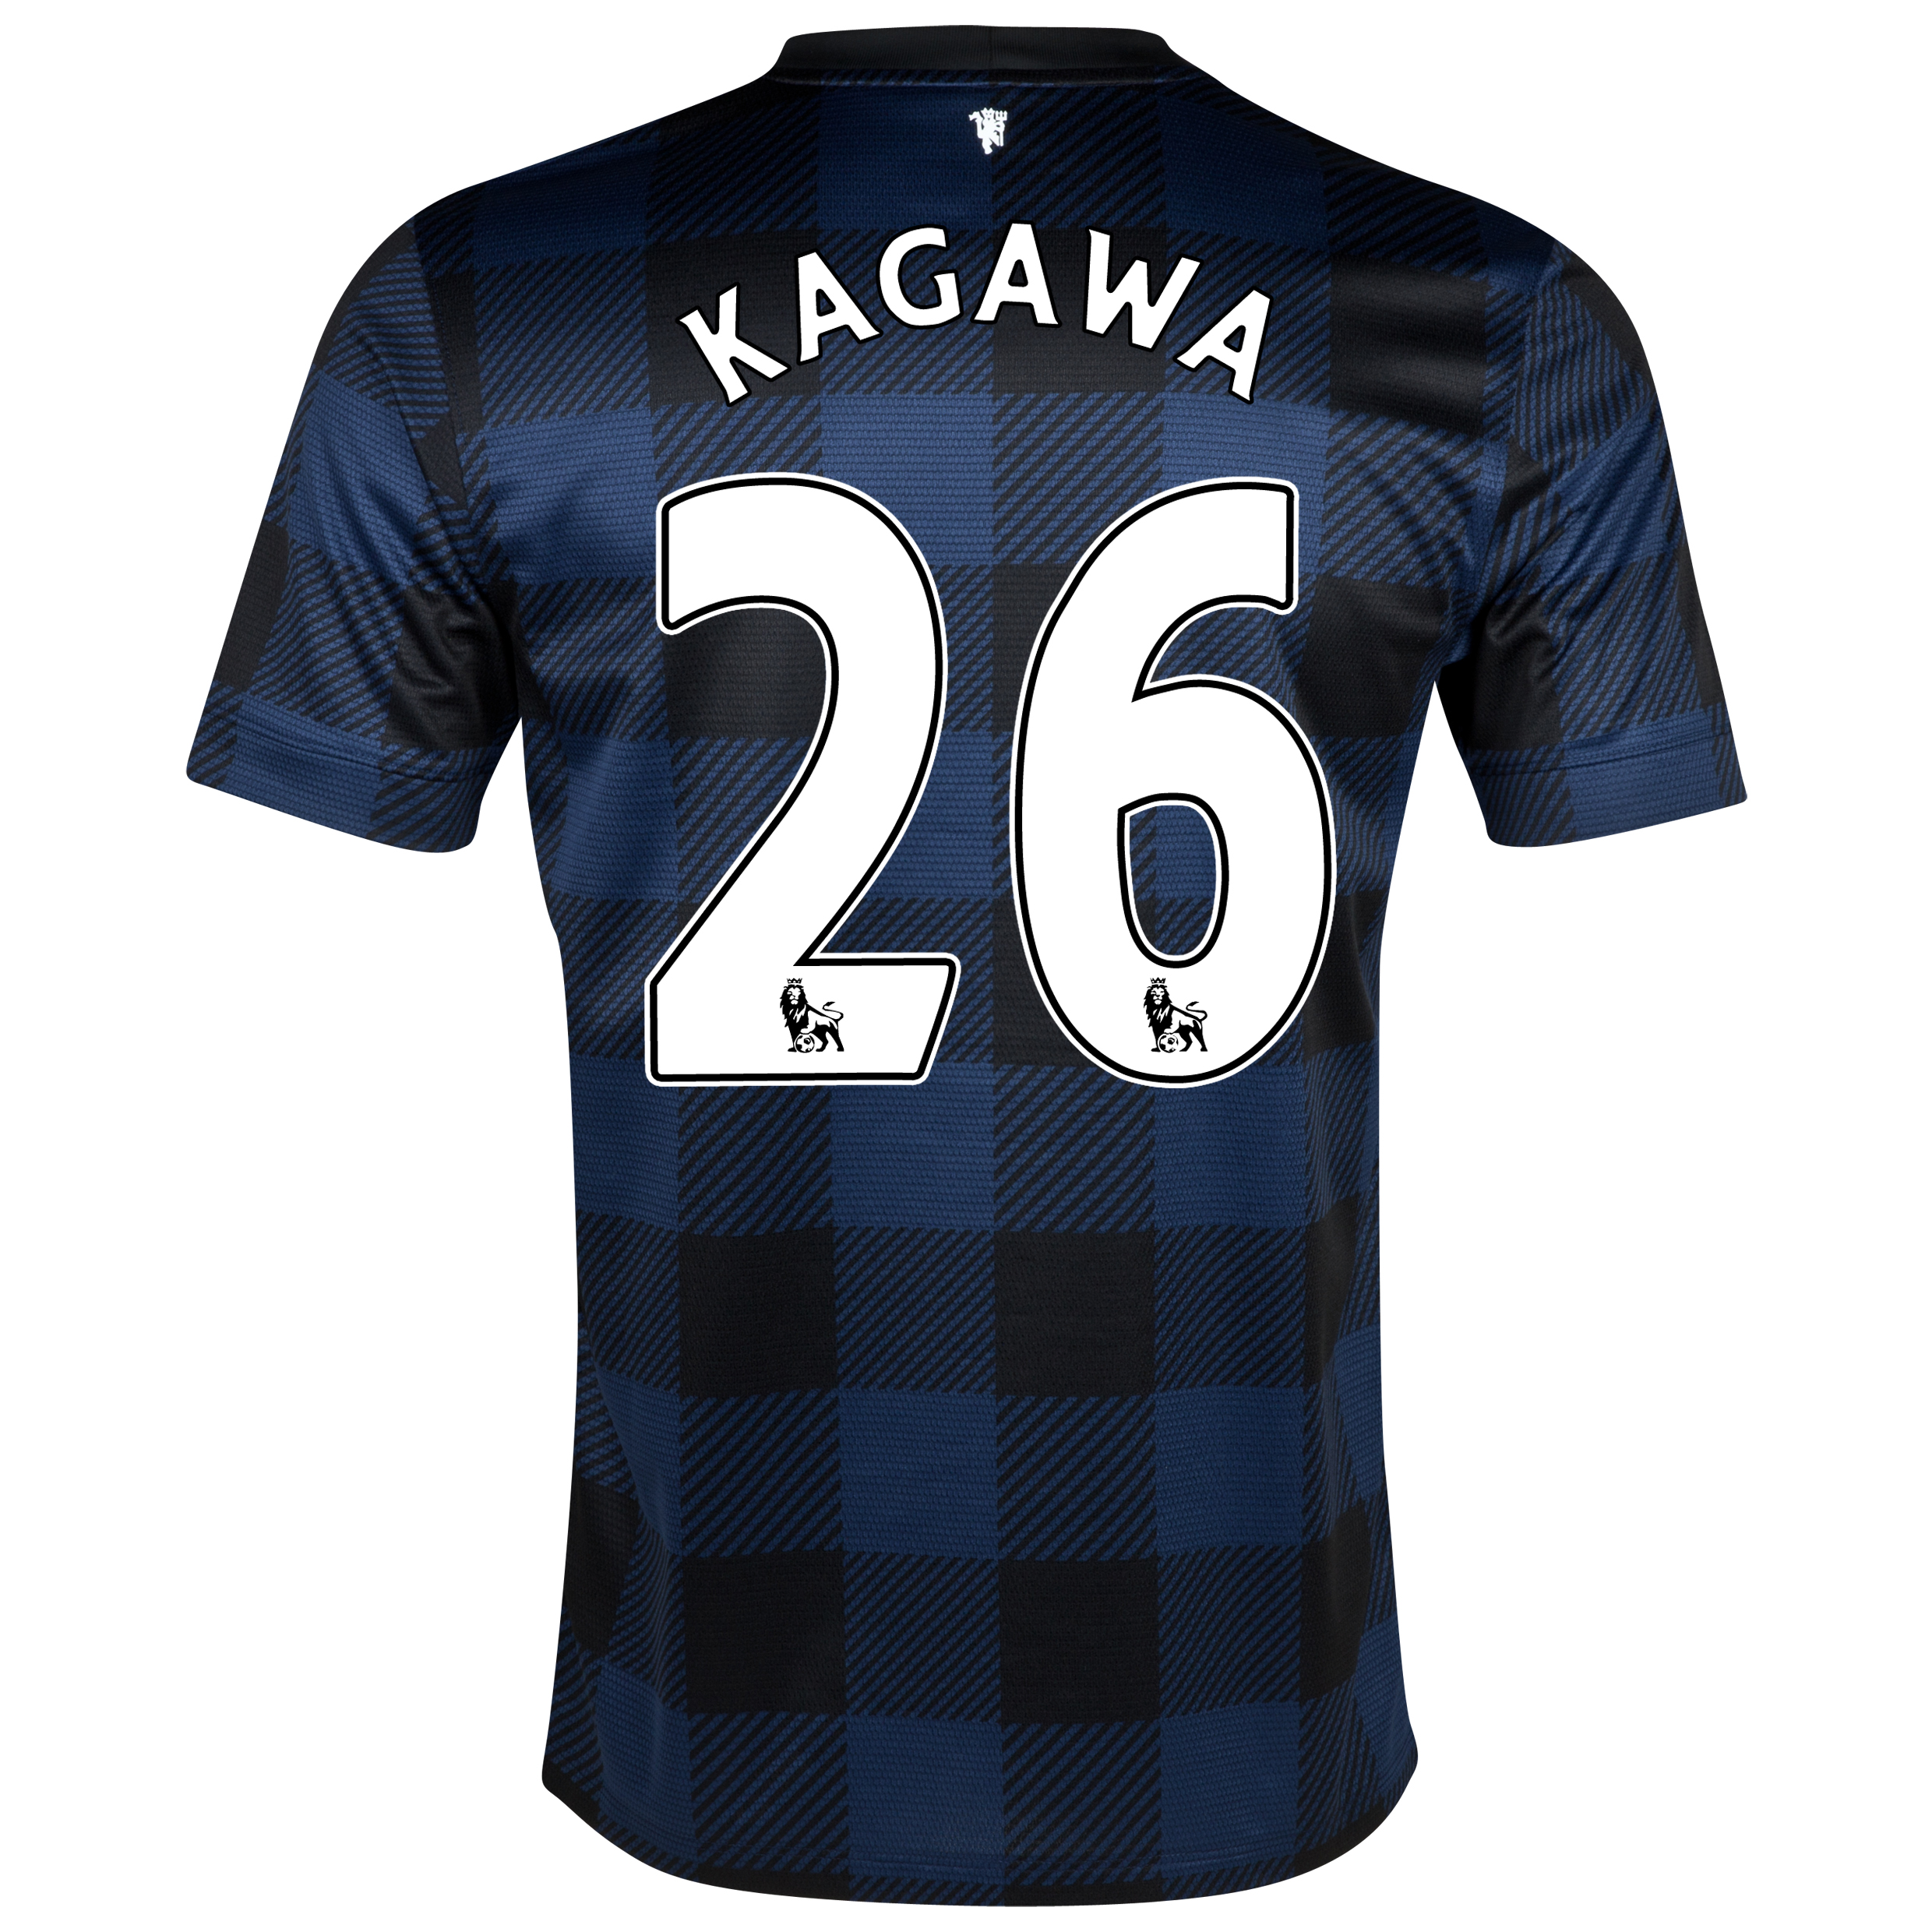 Manchester United Away Shirt 2013/14 with Kagawa 26 printing